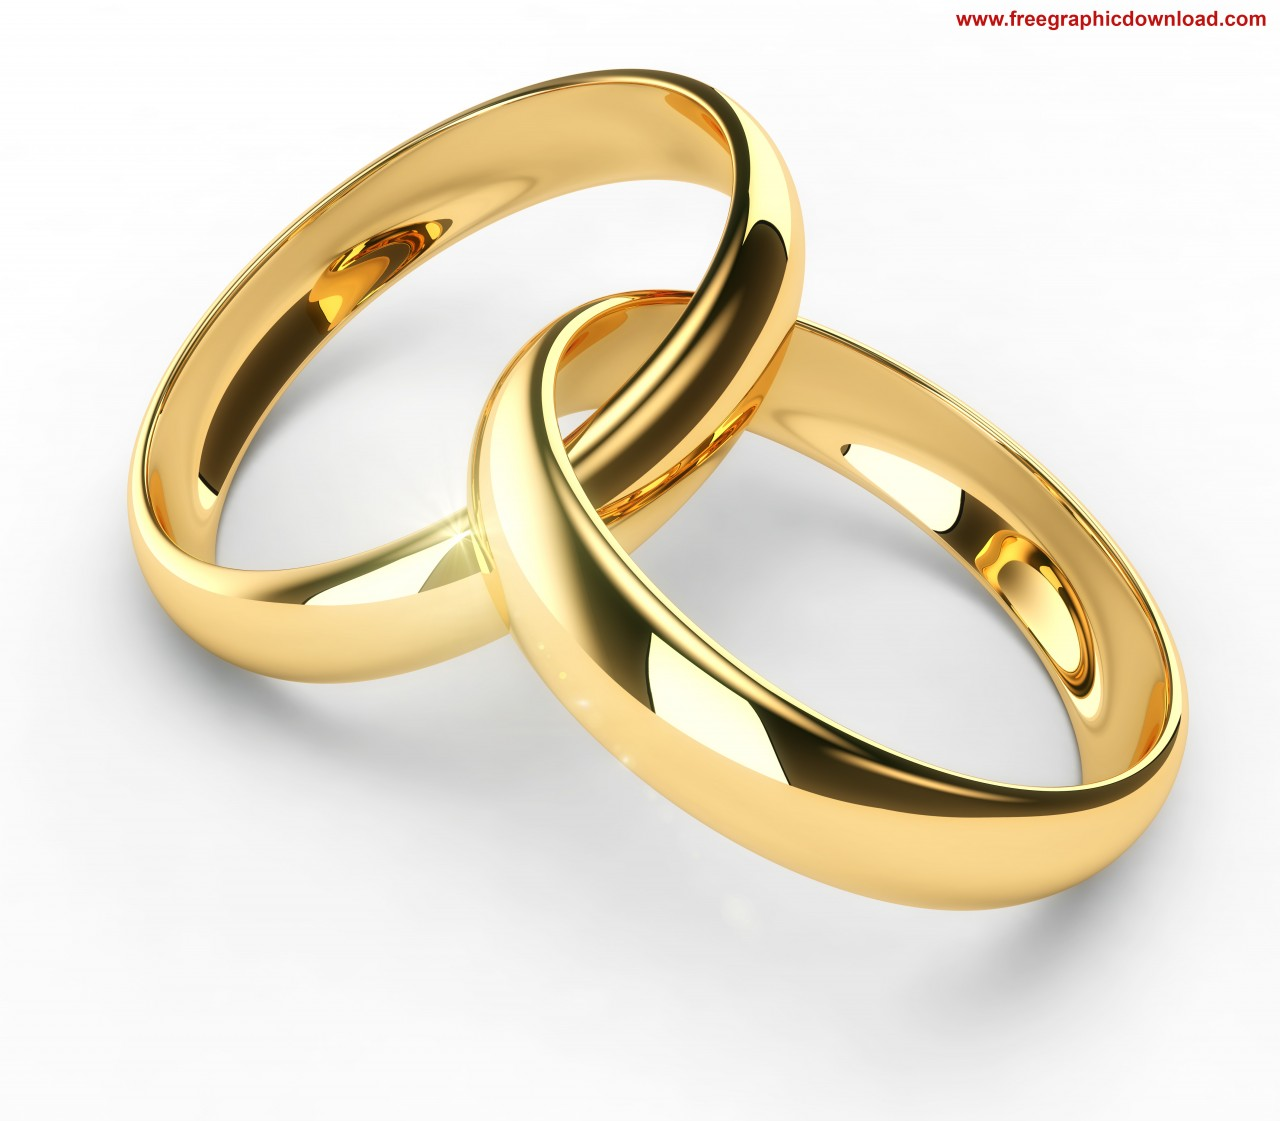 Pictures Of Wedding Rings 1 Jpg